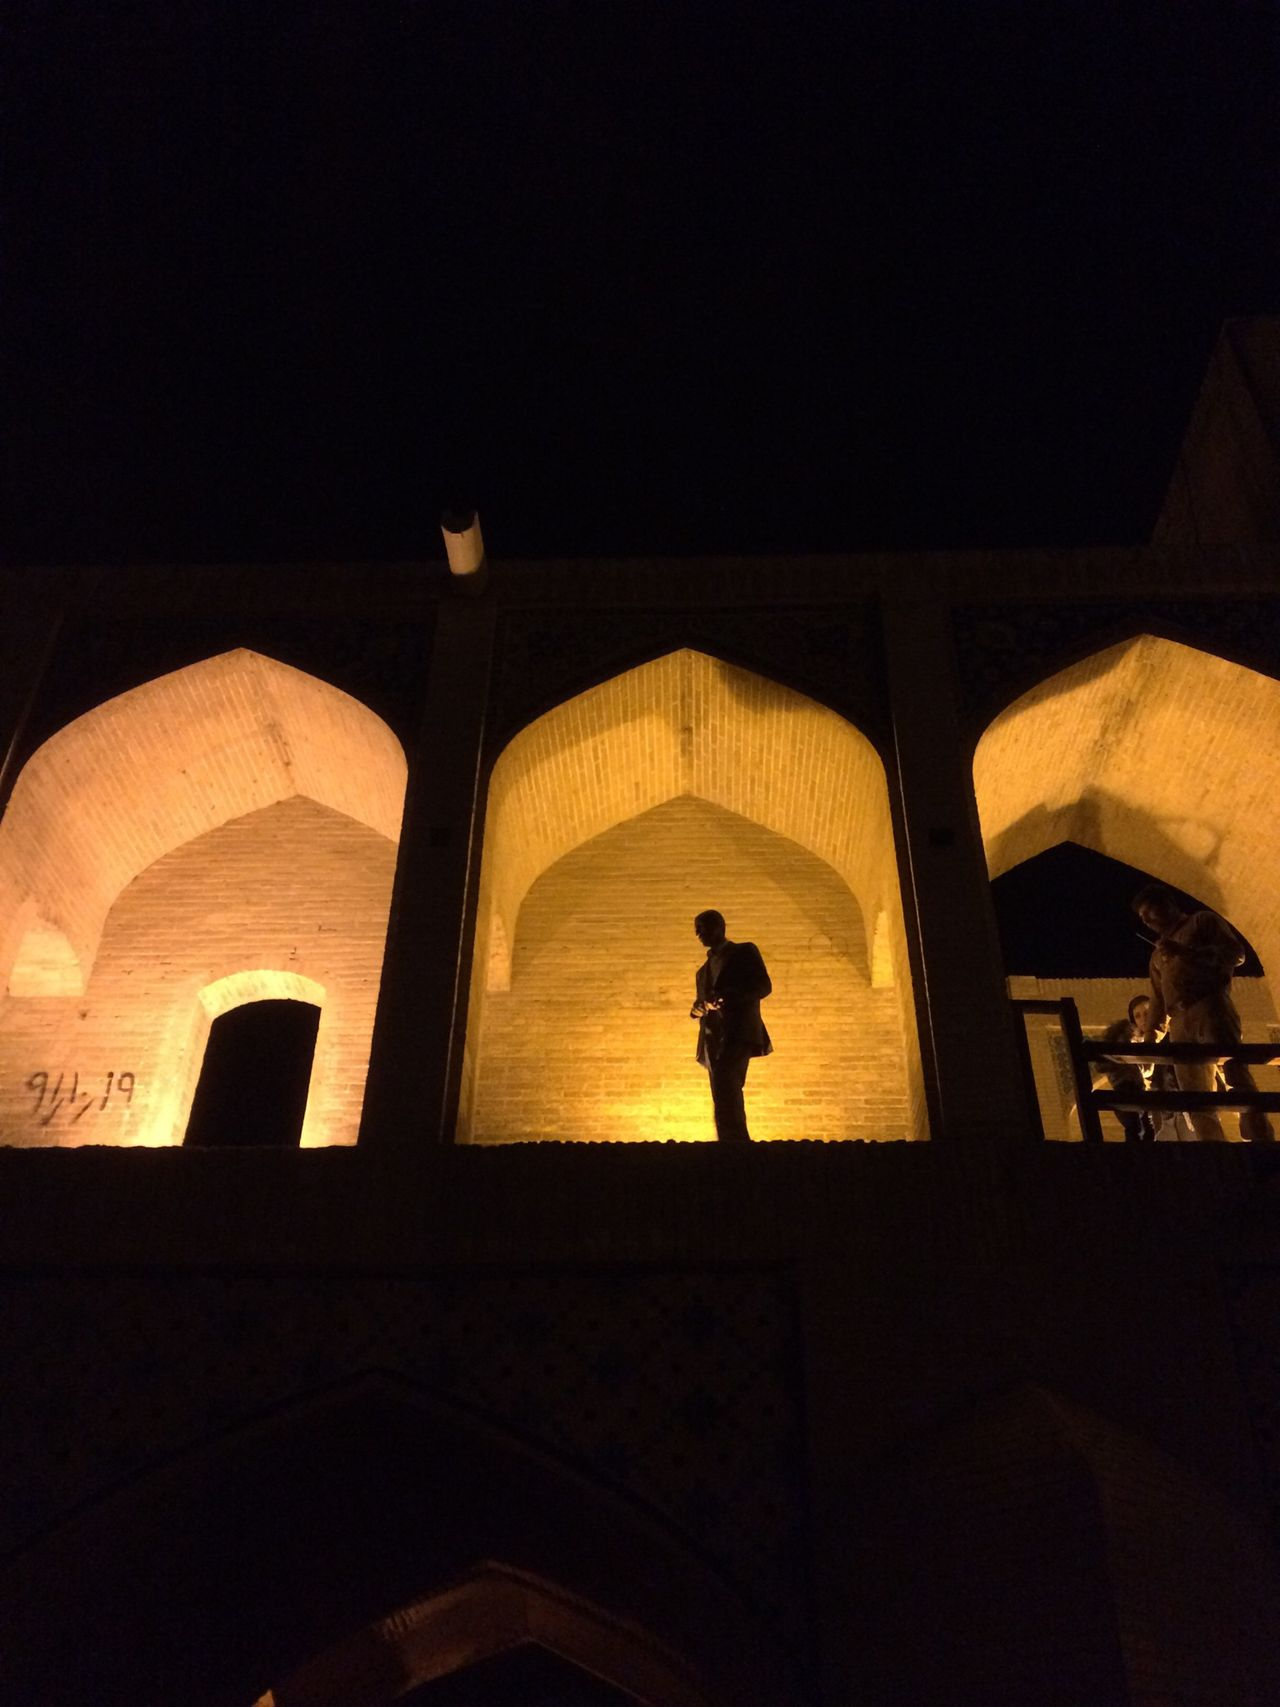 The Purist (no Edit, No Filter) Nightphotography Night Lights Alone Man Esfahan Life